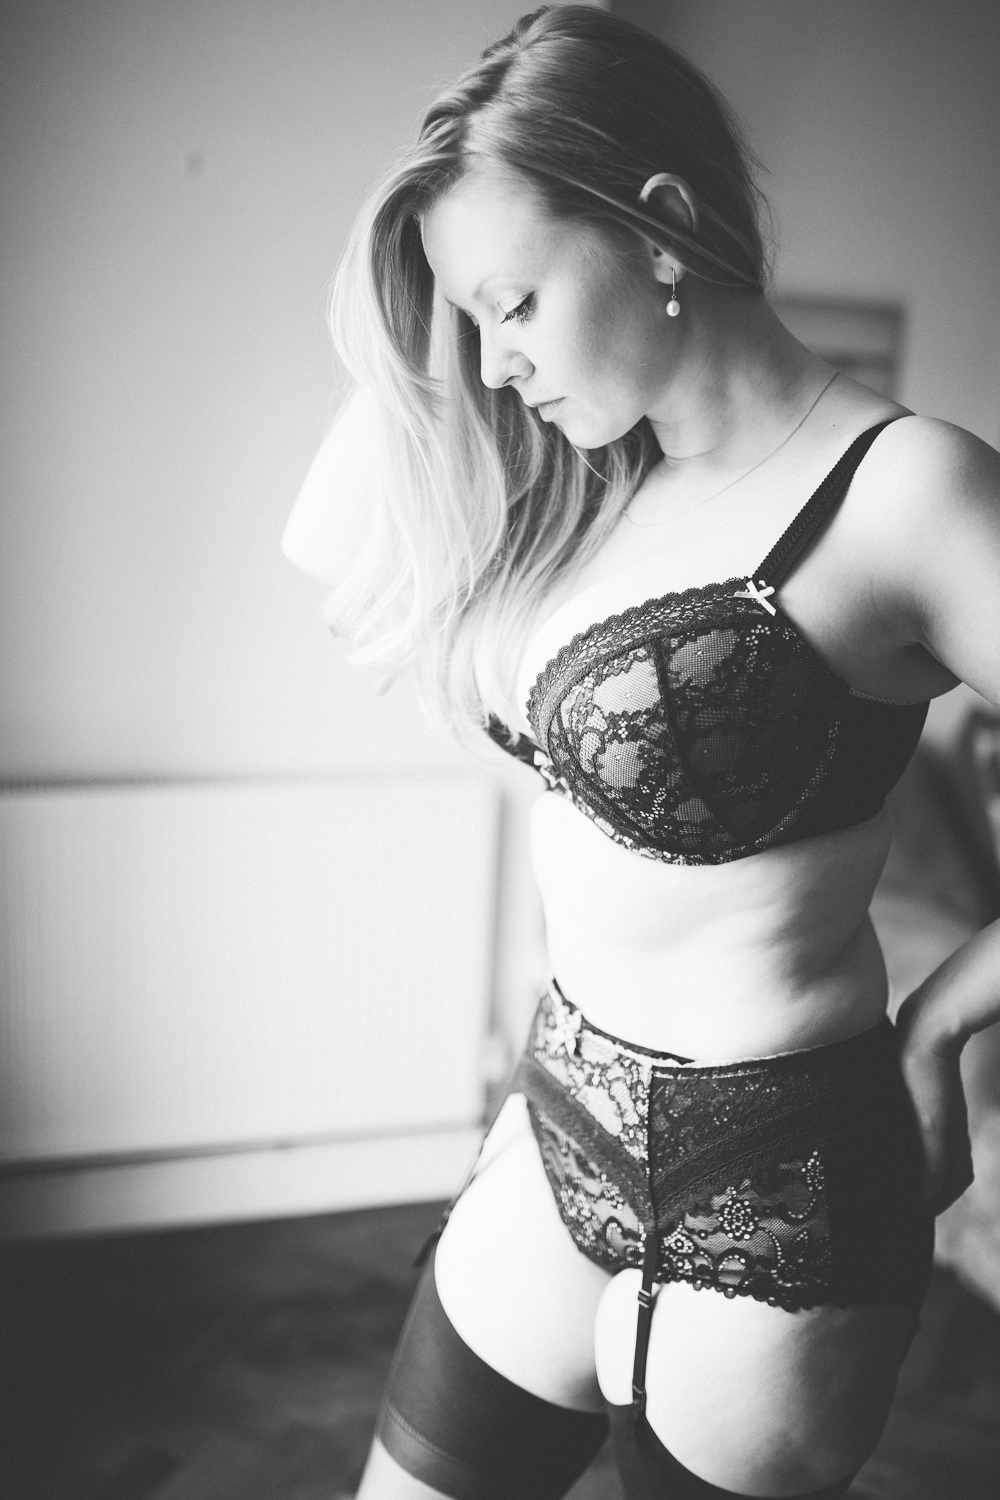 Creative Artistic Boudoir Photography London Curvy (9 of 42).jpg